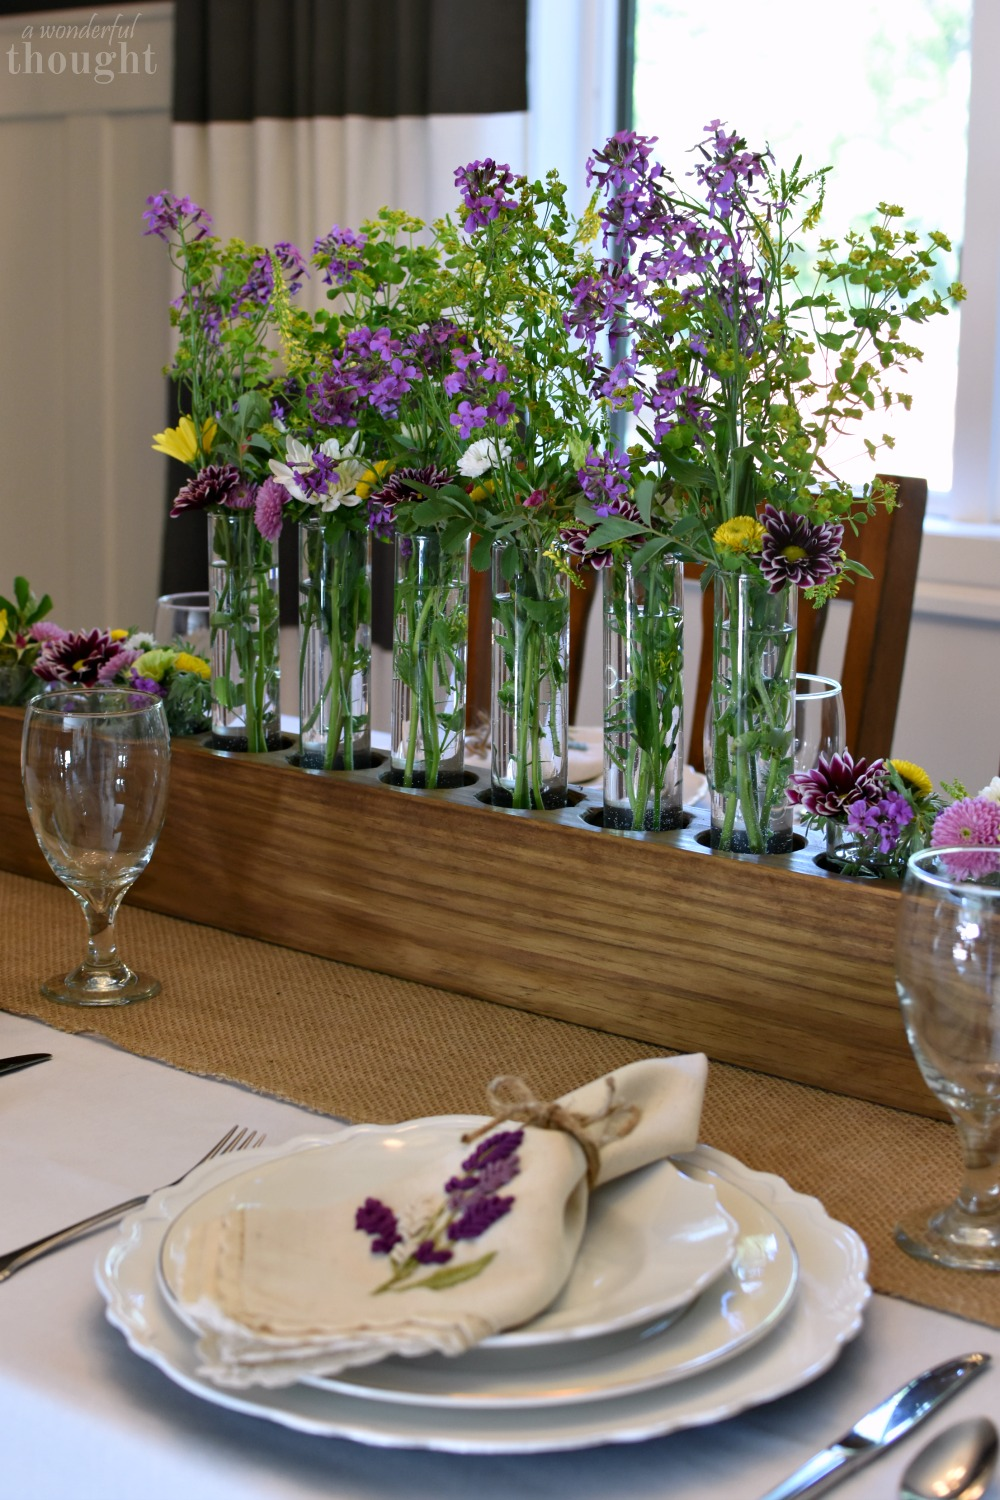 summer wildflowers tablescape a wonderful thought